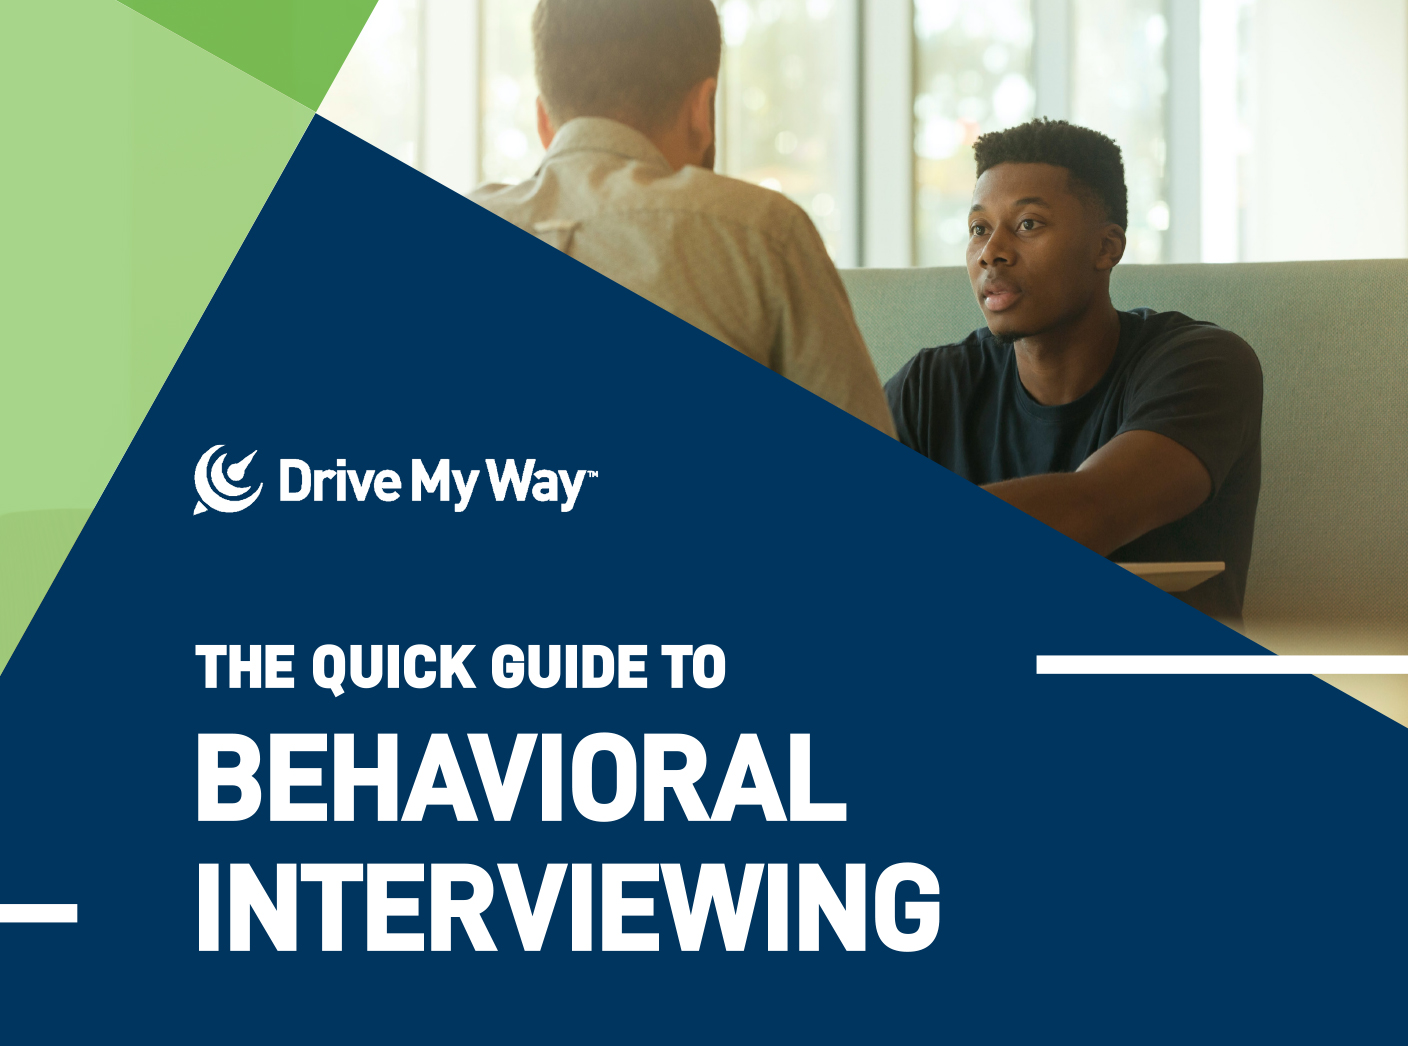 The Quick Guide to Behavioral Interviewing